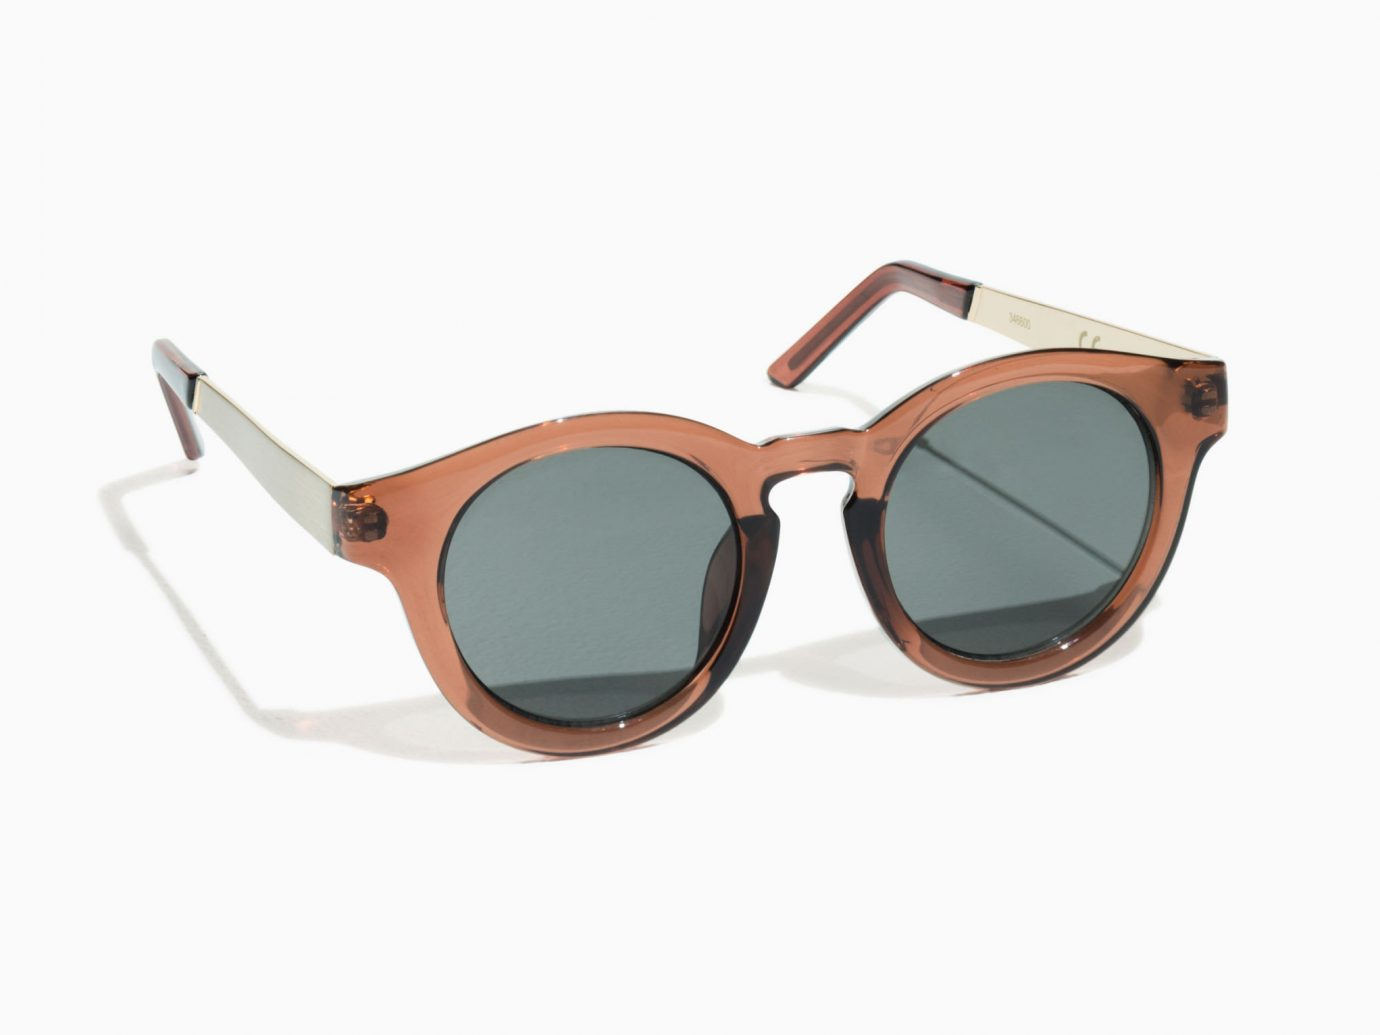 Spring Travel Style + Design Summer Travel Travel Lifestyle Travel Shop spectacles sunglasses accessory eyewear vision care glasses goggles brown product design mirror personal protective equipment product beige font